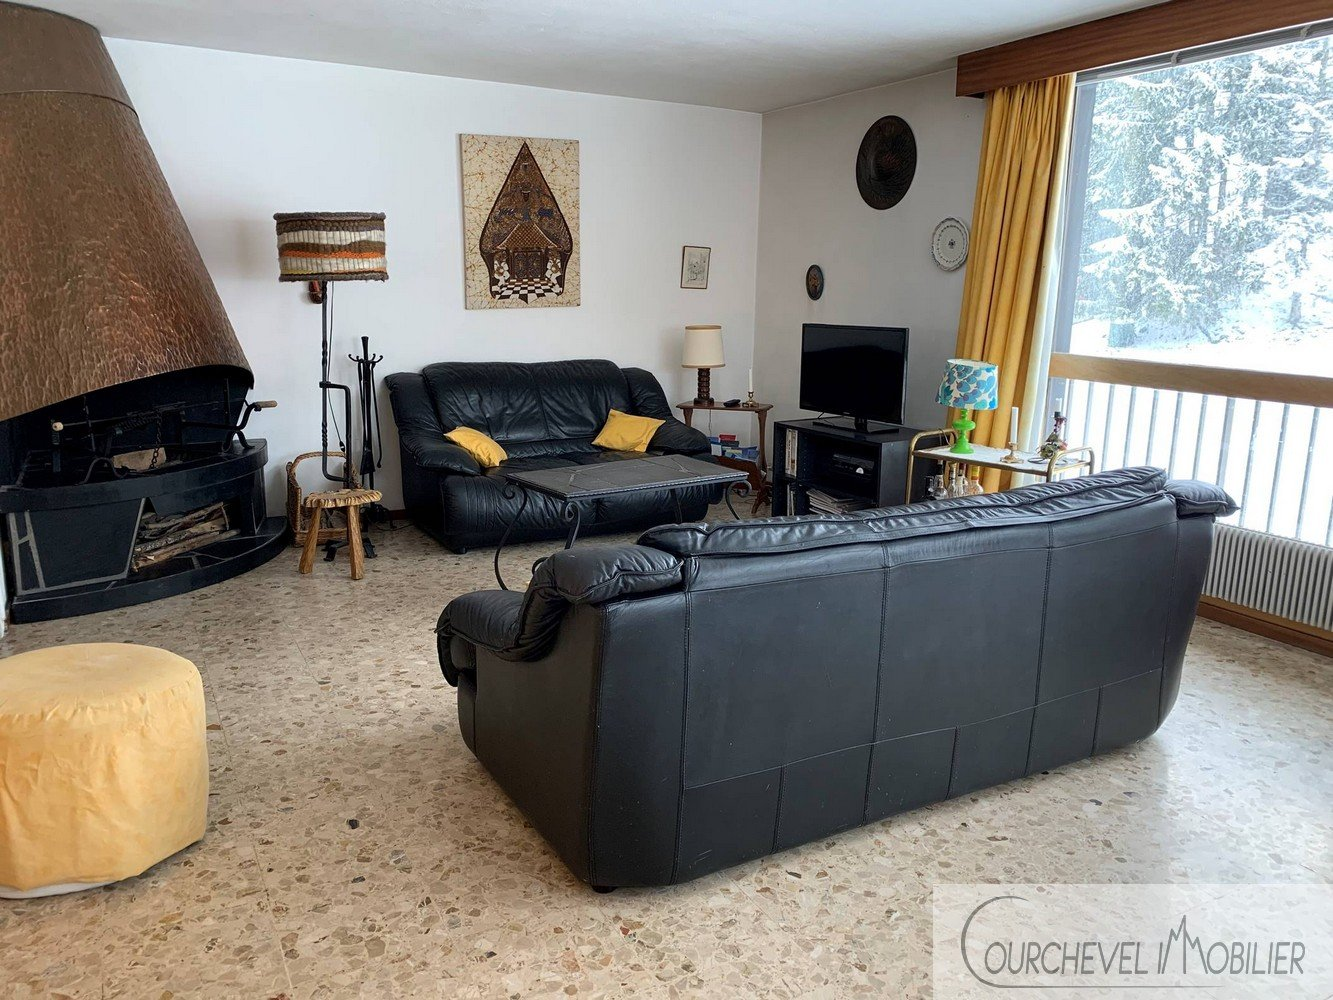 LARGE APPARTEMENT - COURCHEVEL LE PRAZ